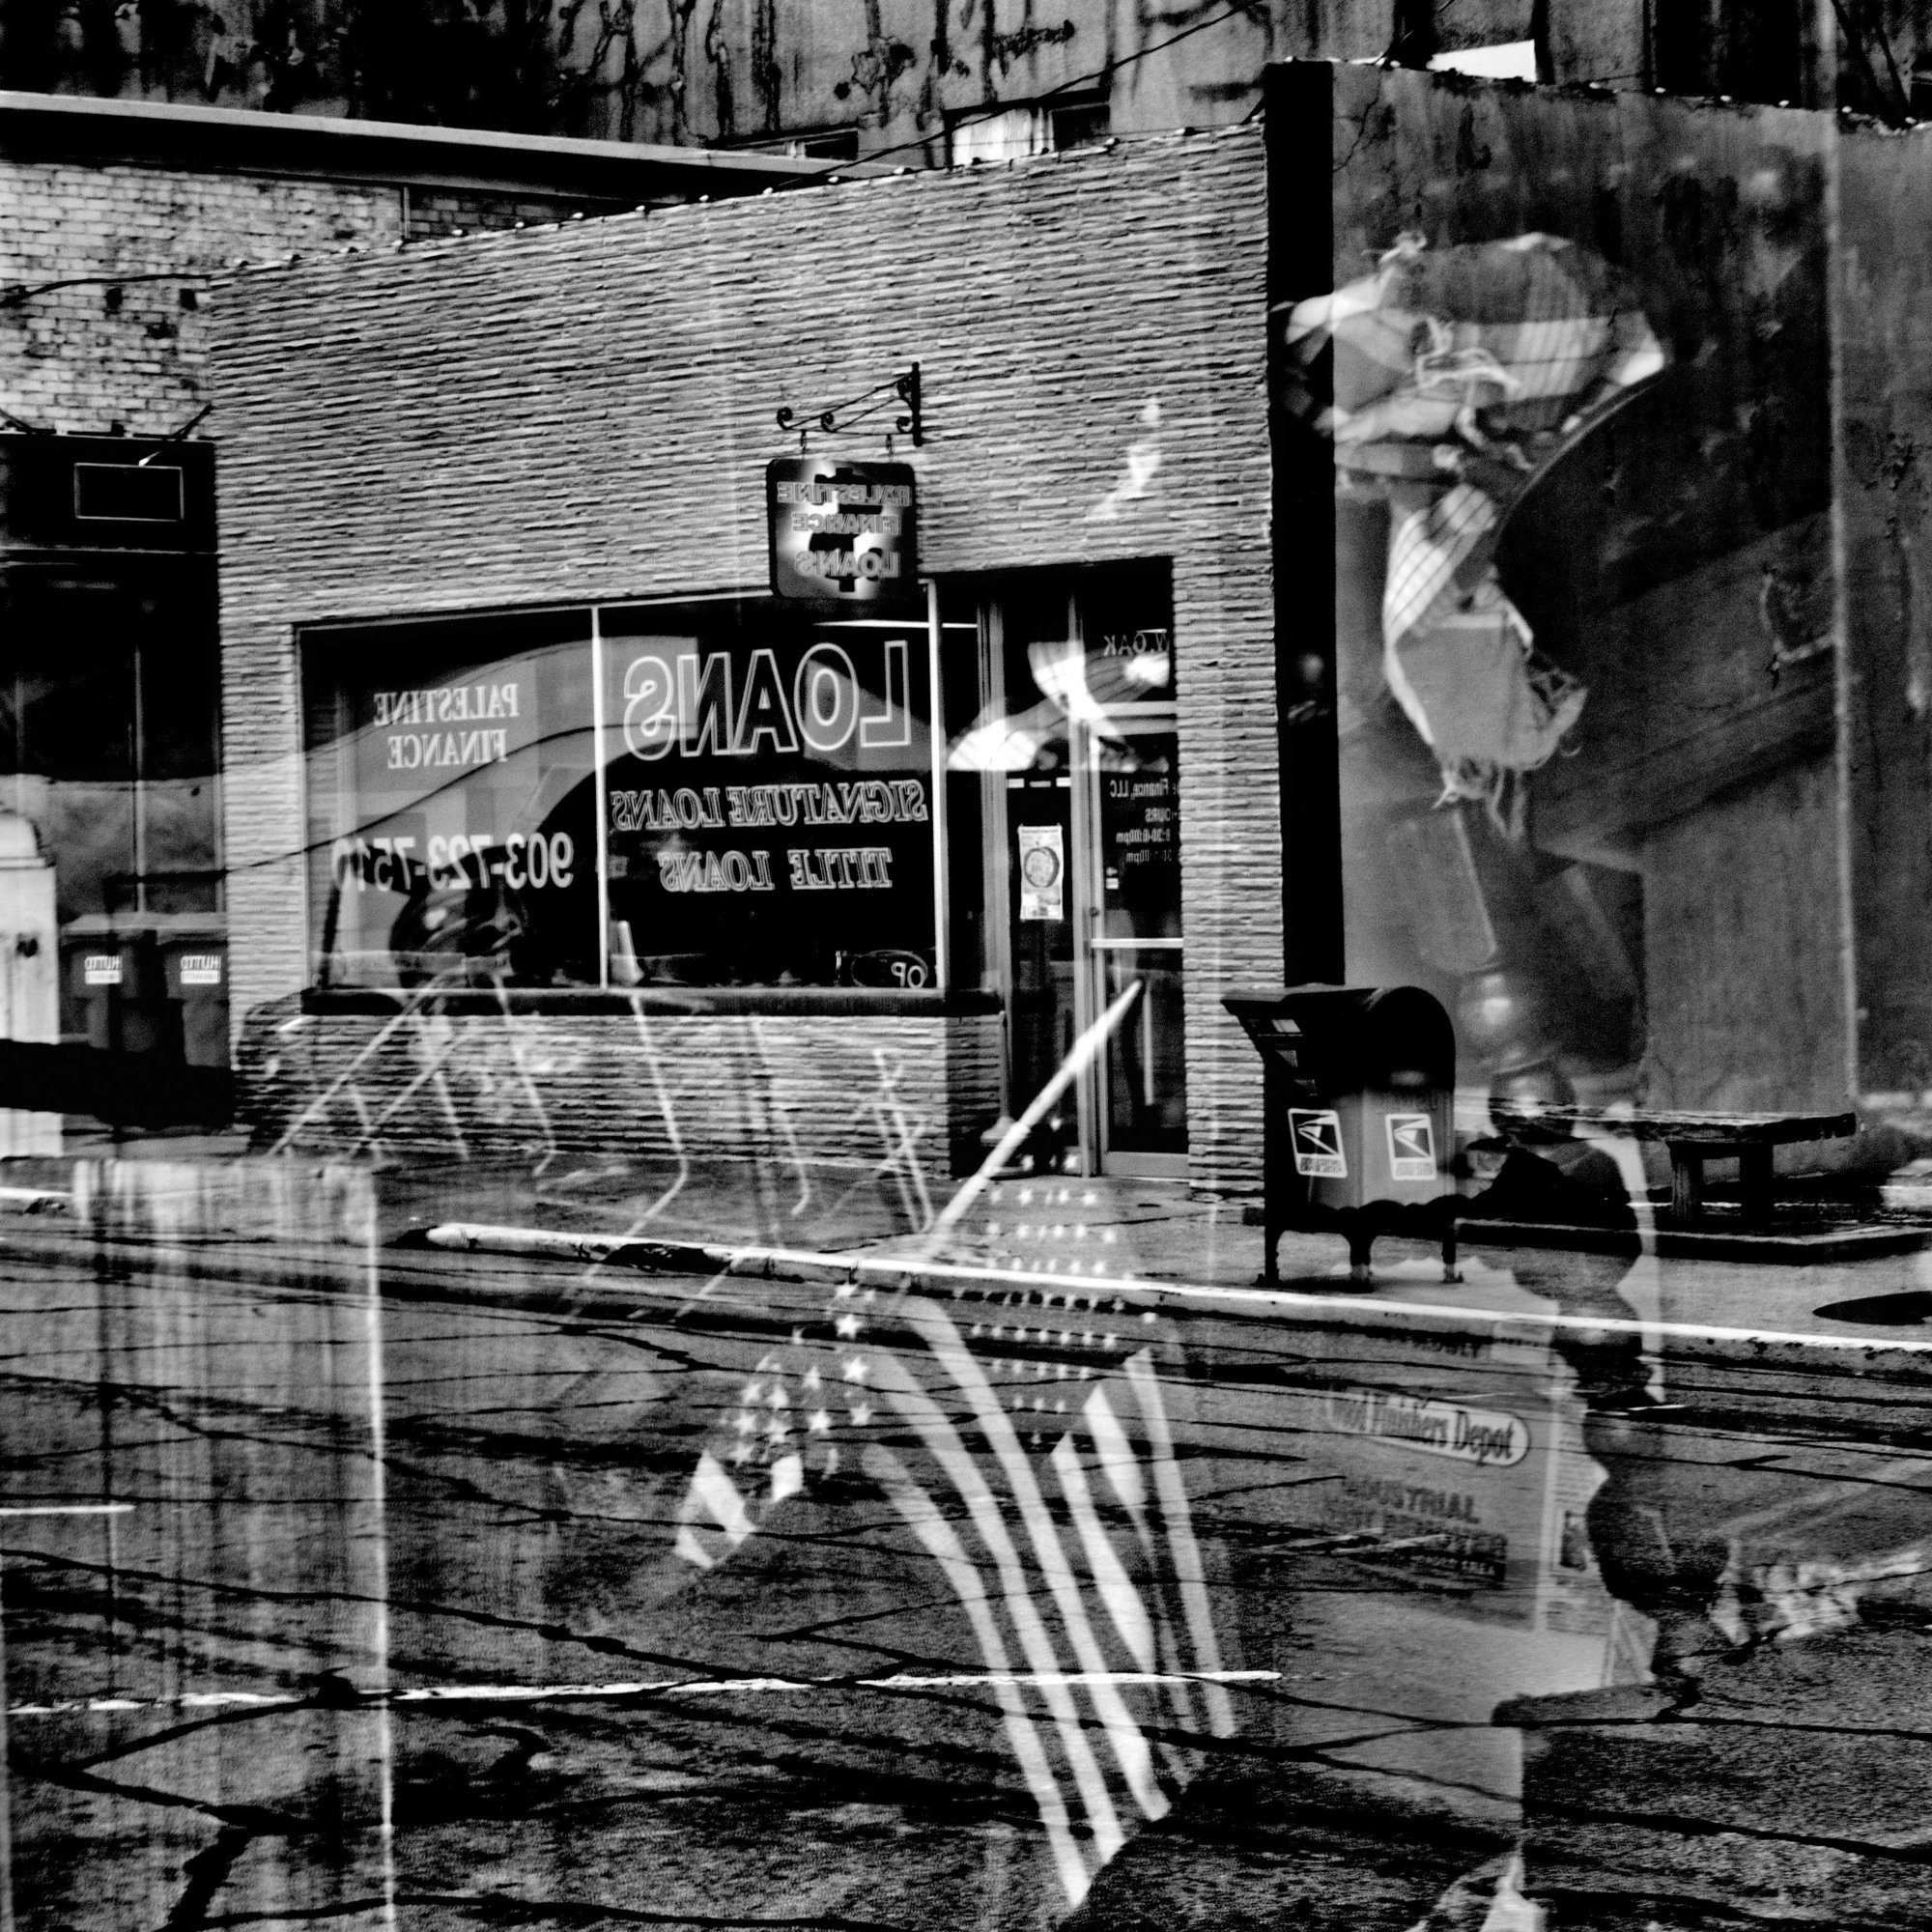 Downtown Palestine, Texas, in 2017.